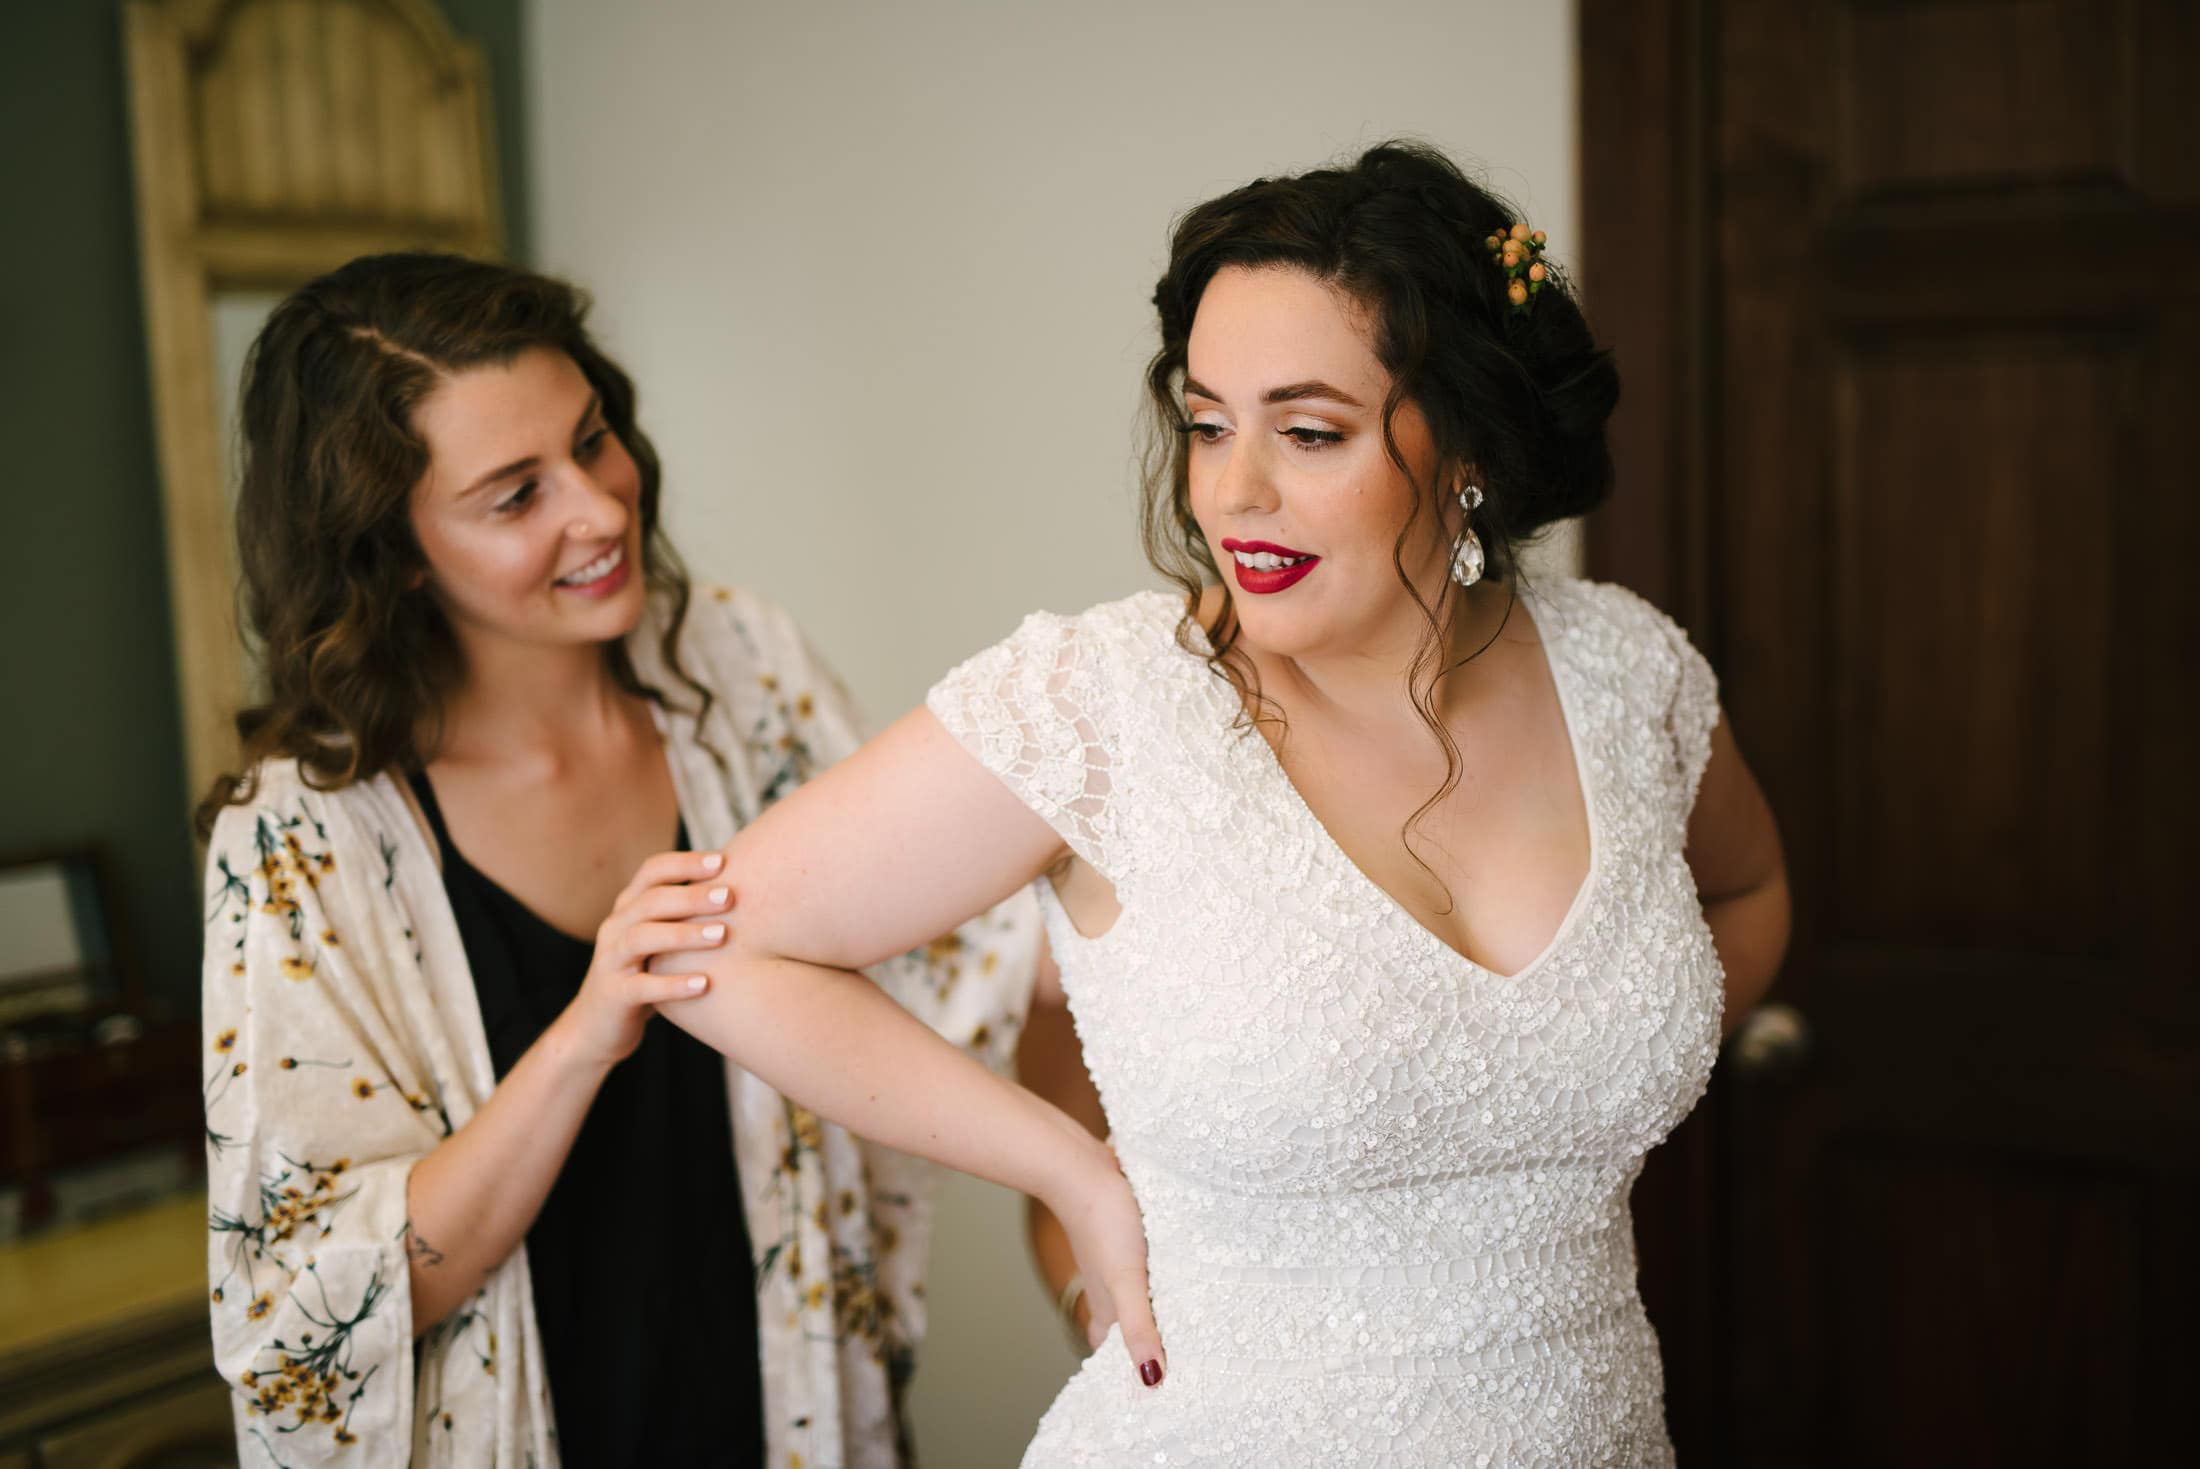 Jessica with her sister getting into wedding dress in Oakland apartment